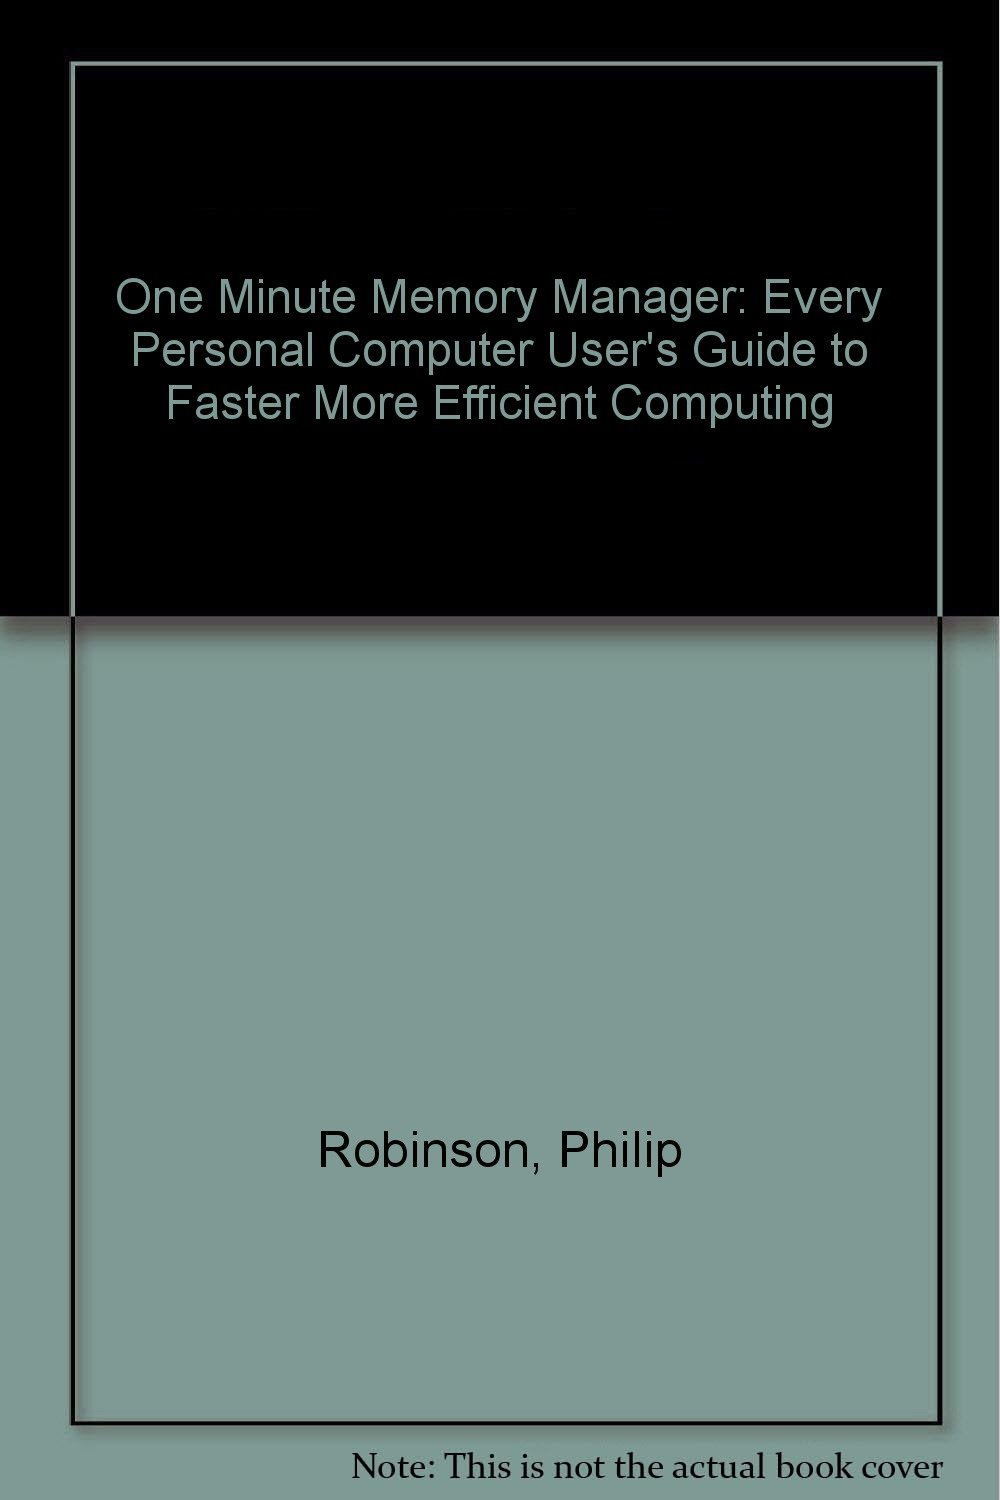 One Minute Memory Manager: Every Personal Computer User's Guide to Faster  More Efficient Computing: Philip Robinson: 9780136362005: Amazon.com: Books